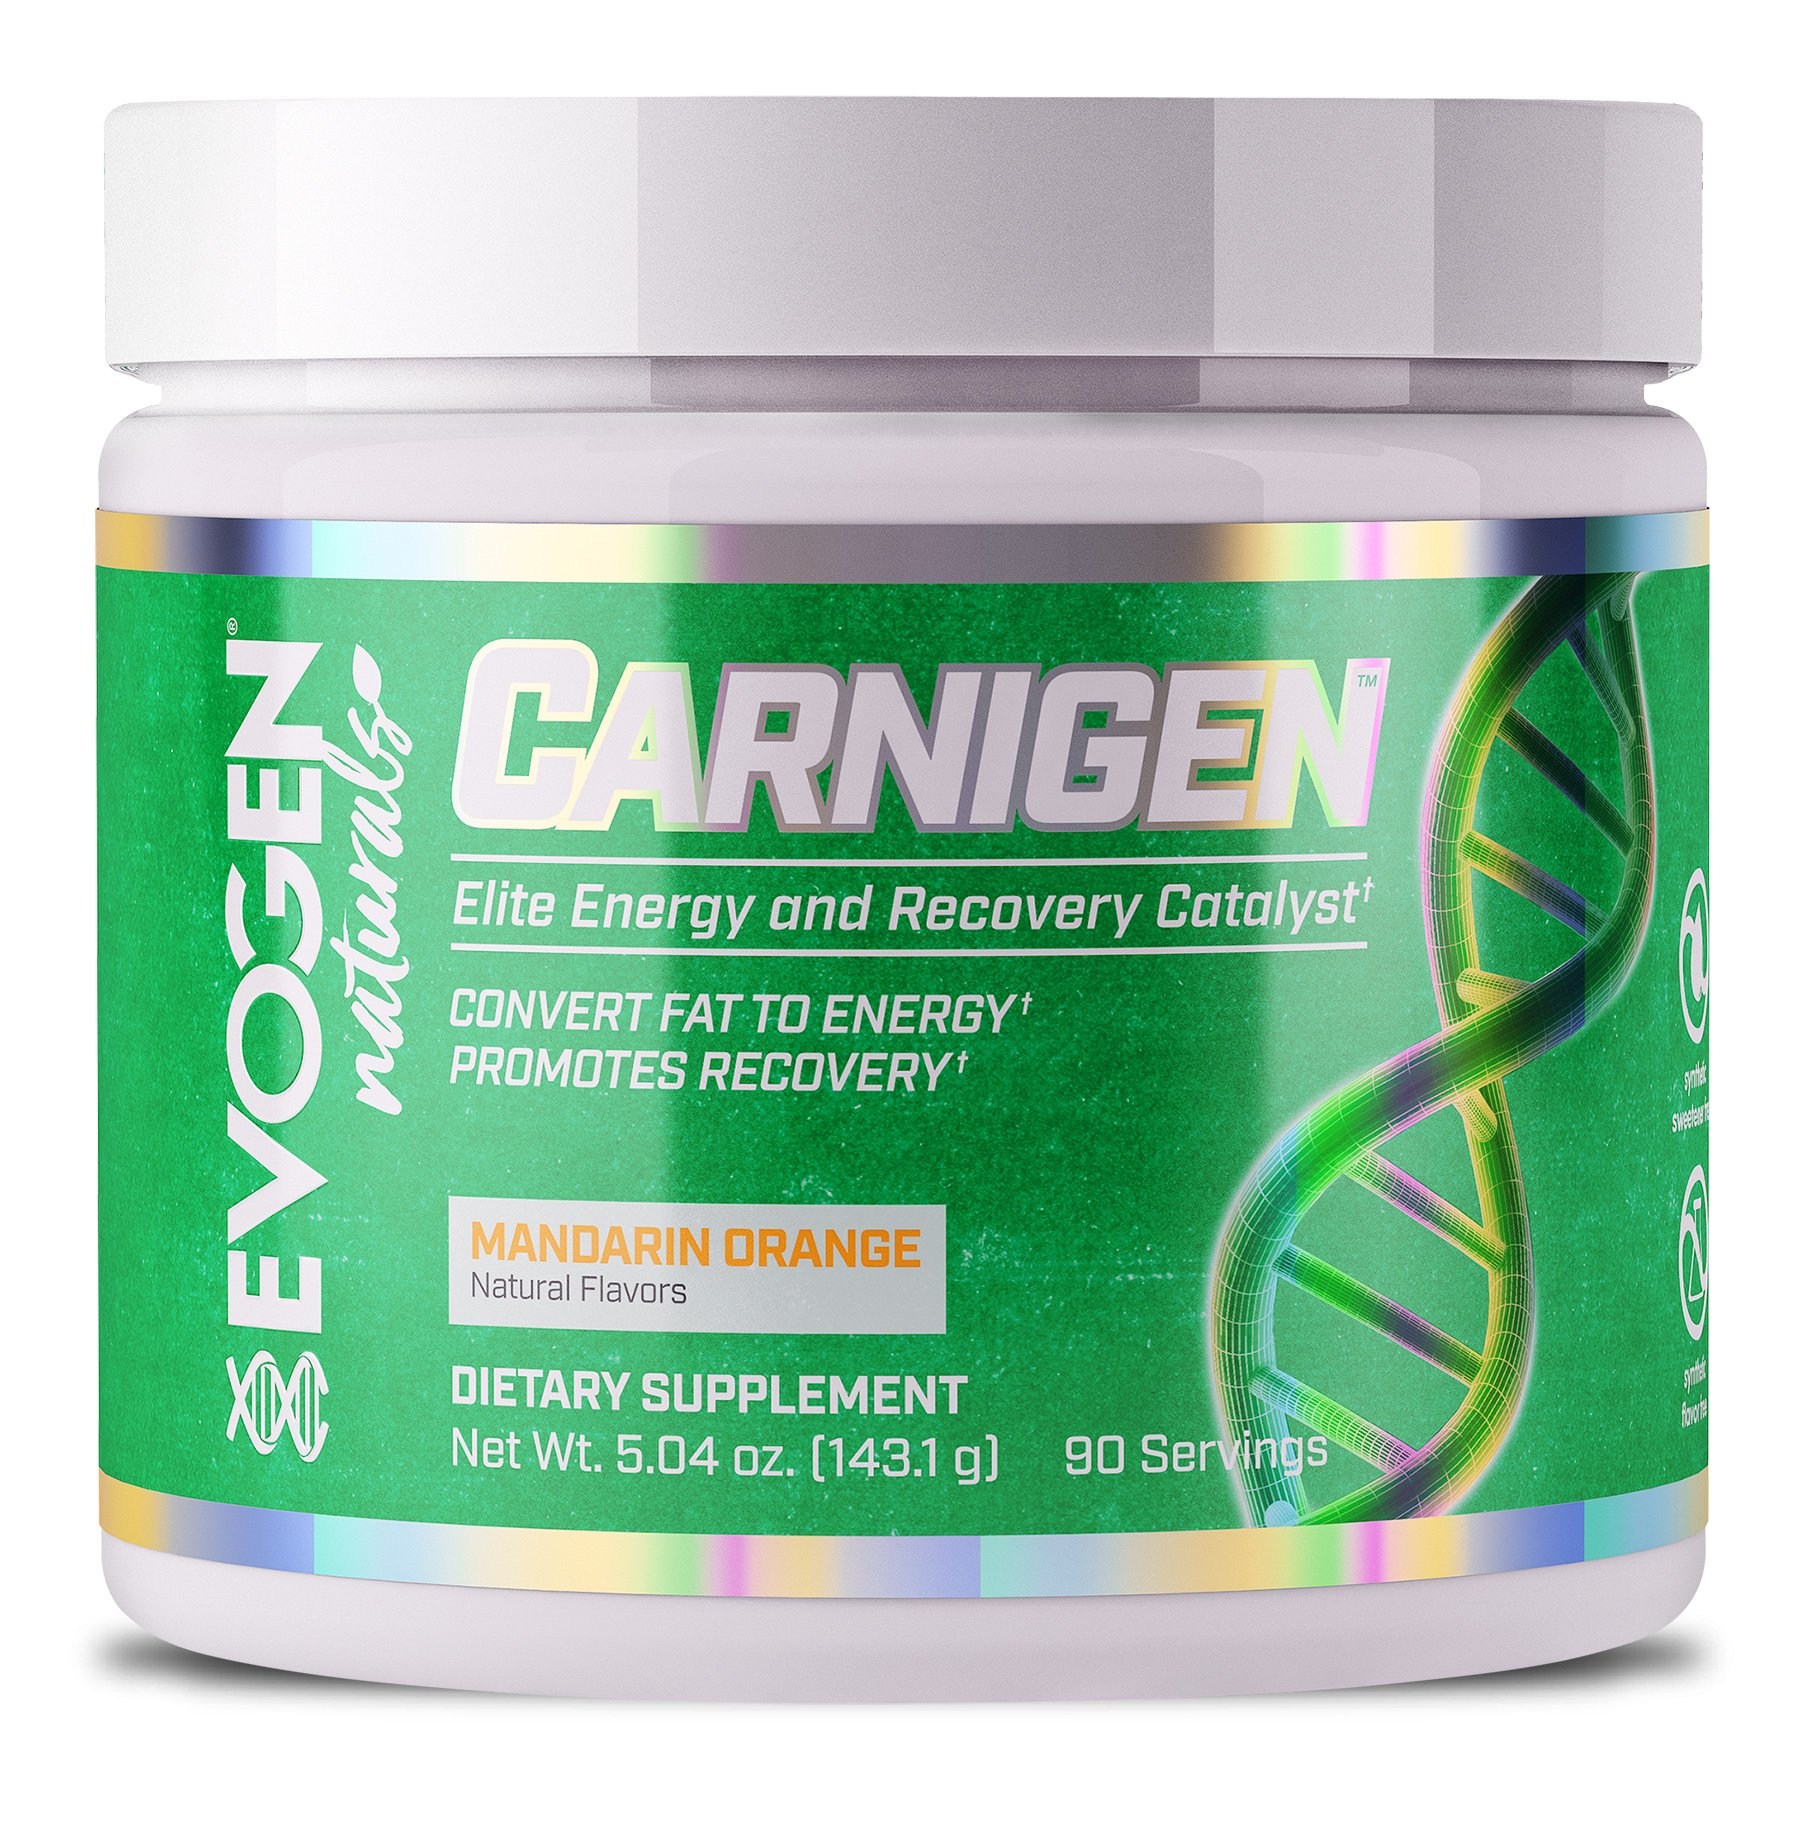 EVOGEN CARNIGEN Naturals, Carnitine Fat Burning Powder, Carnitine Tartrate, Acetyl-l-carnitine, Carnitine Orotate, Carnitine Fumarate, Bioperine (Mandarin Orange) by Evogen Nutrition